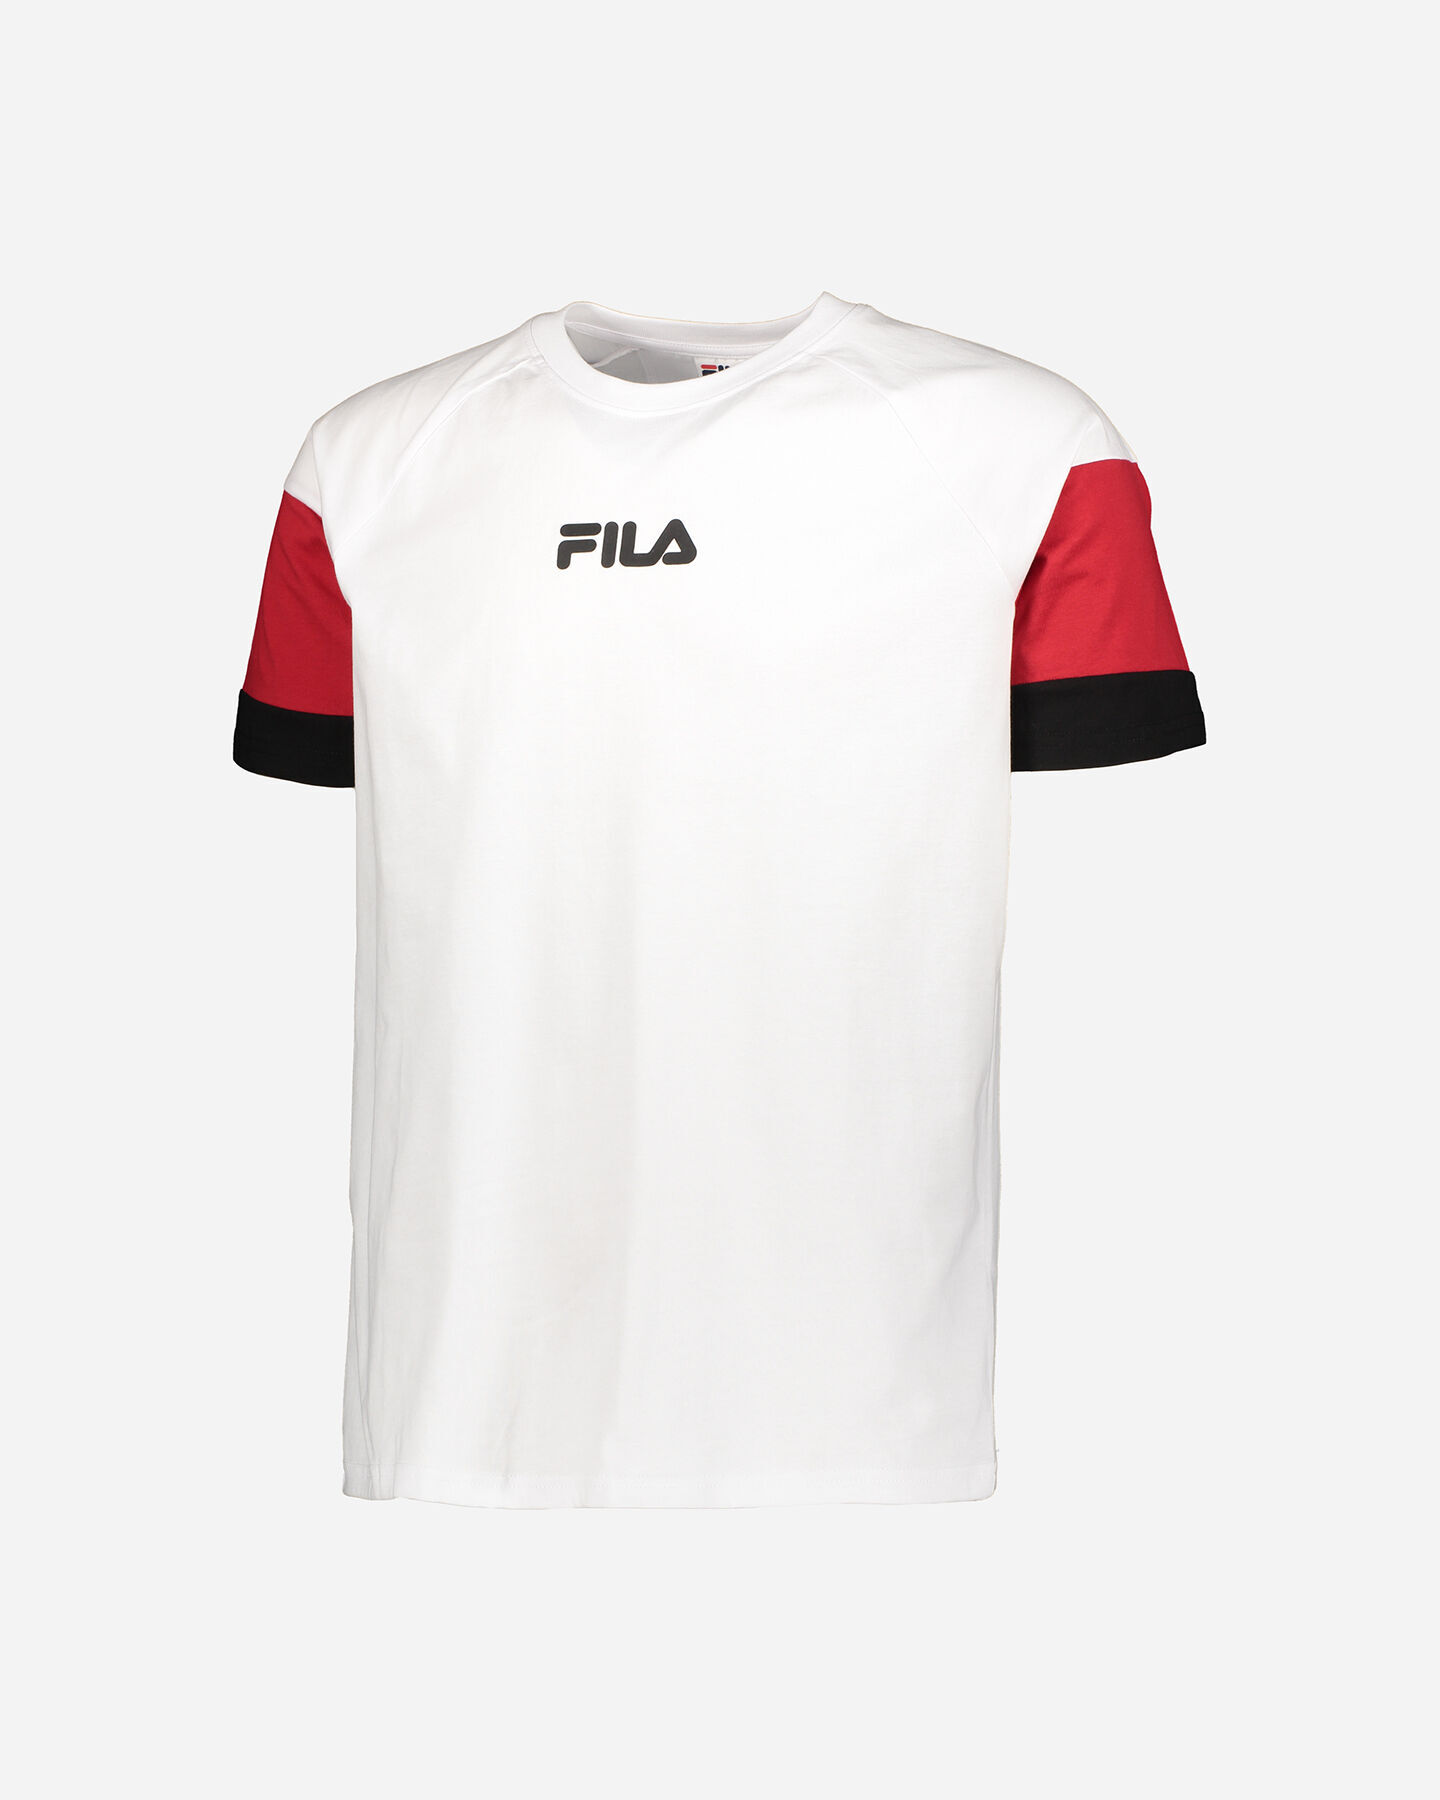 T-Shirt FILA NEW COLOR BLOCK M S4088467 scatto 5